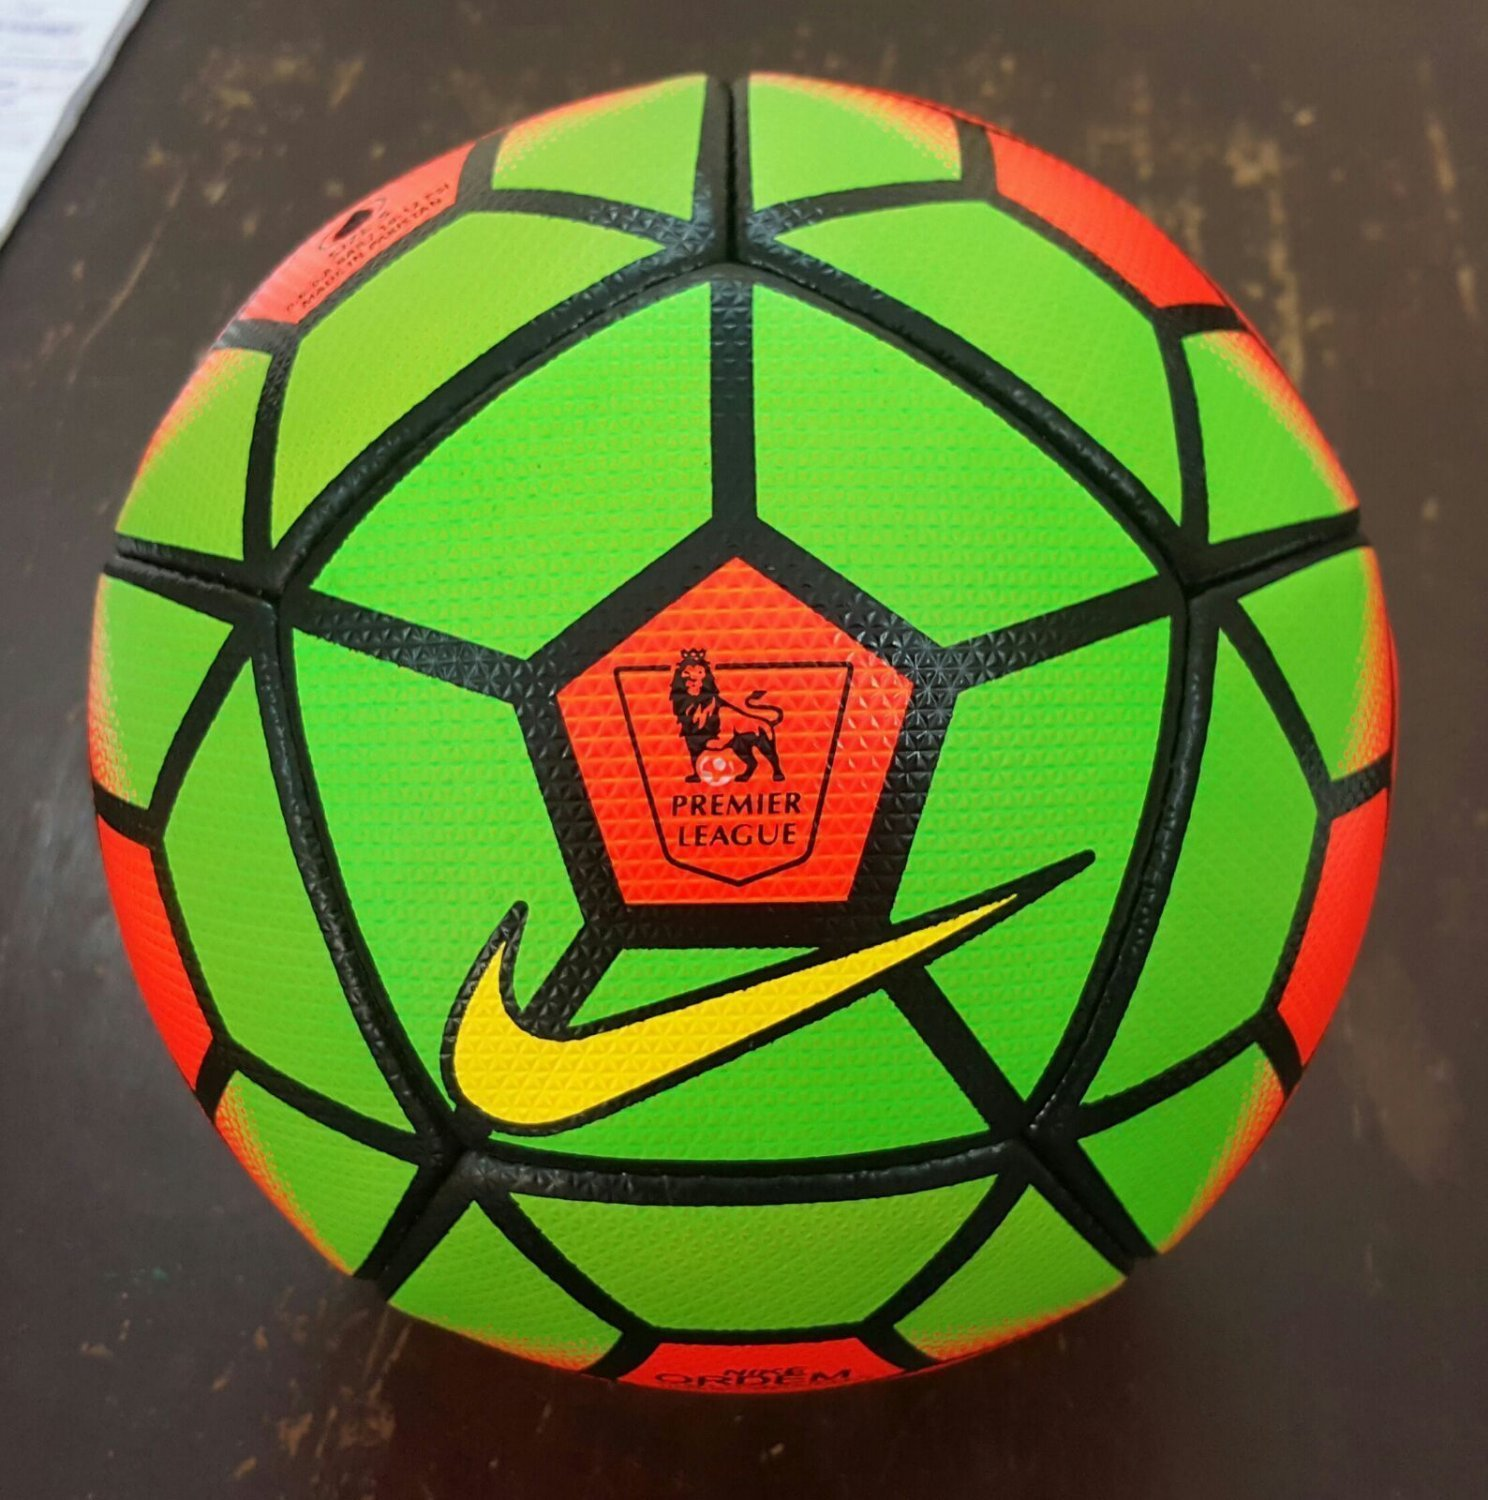 Replica Nike Ordem Premier League 15/16 Official Match Ball (Orange & Green)